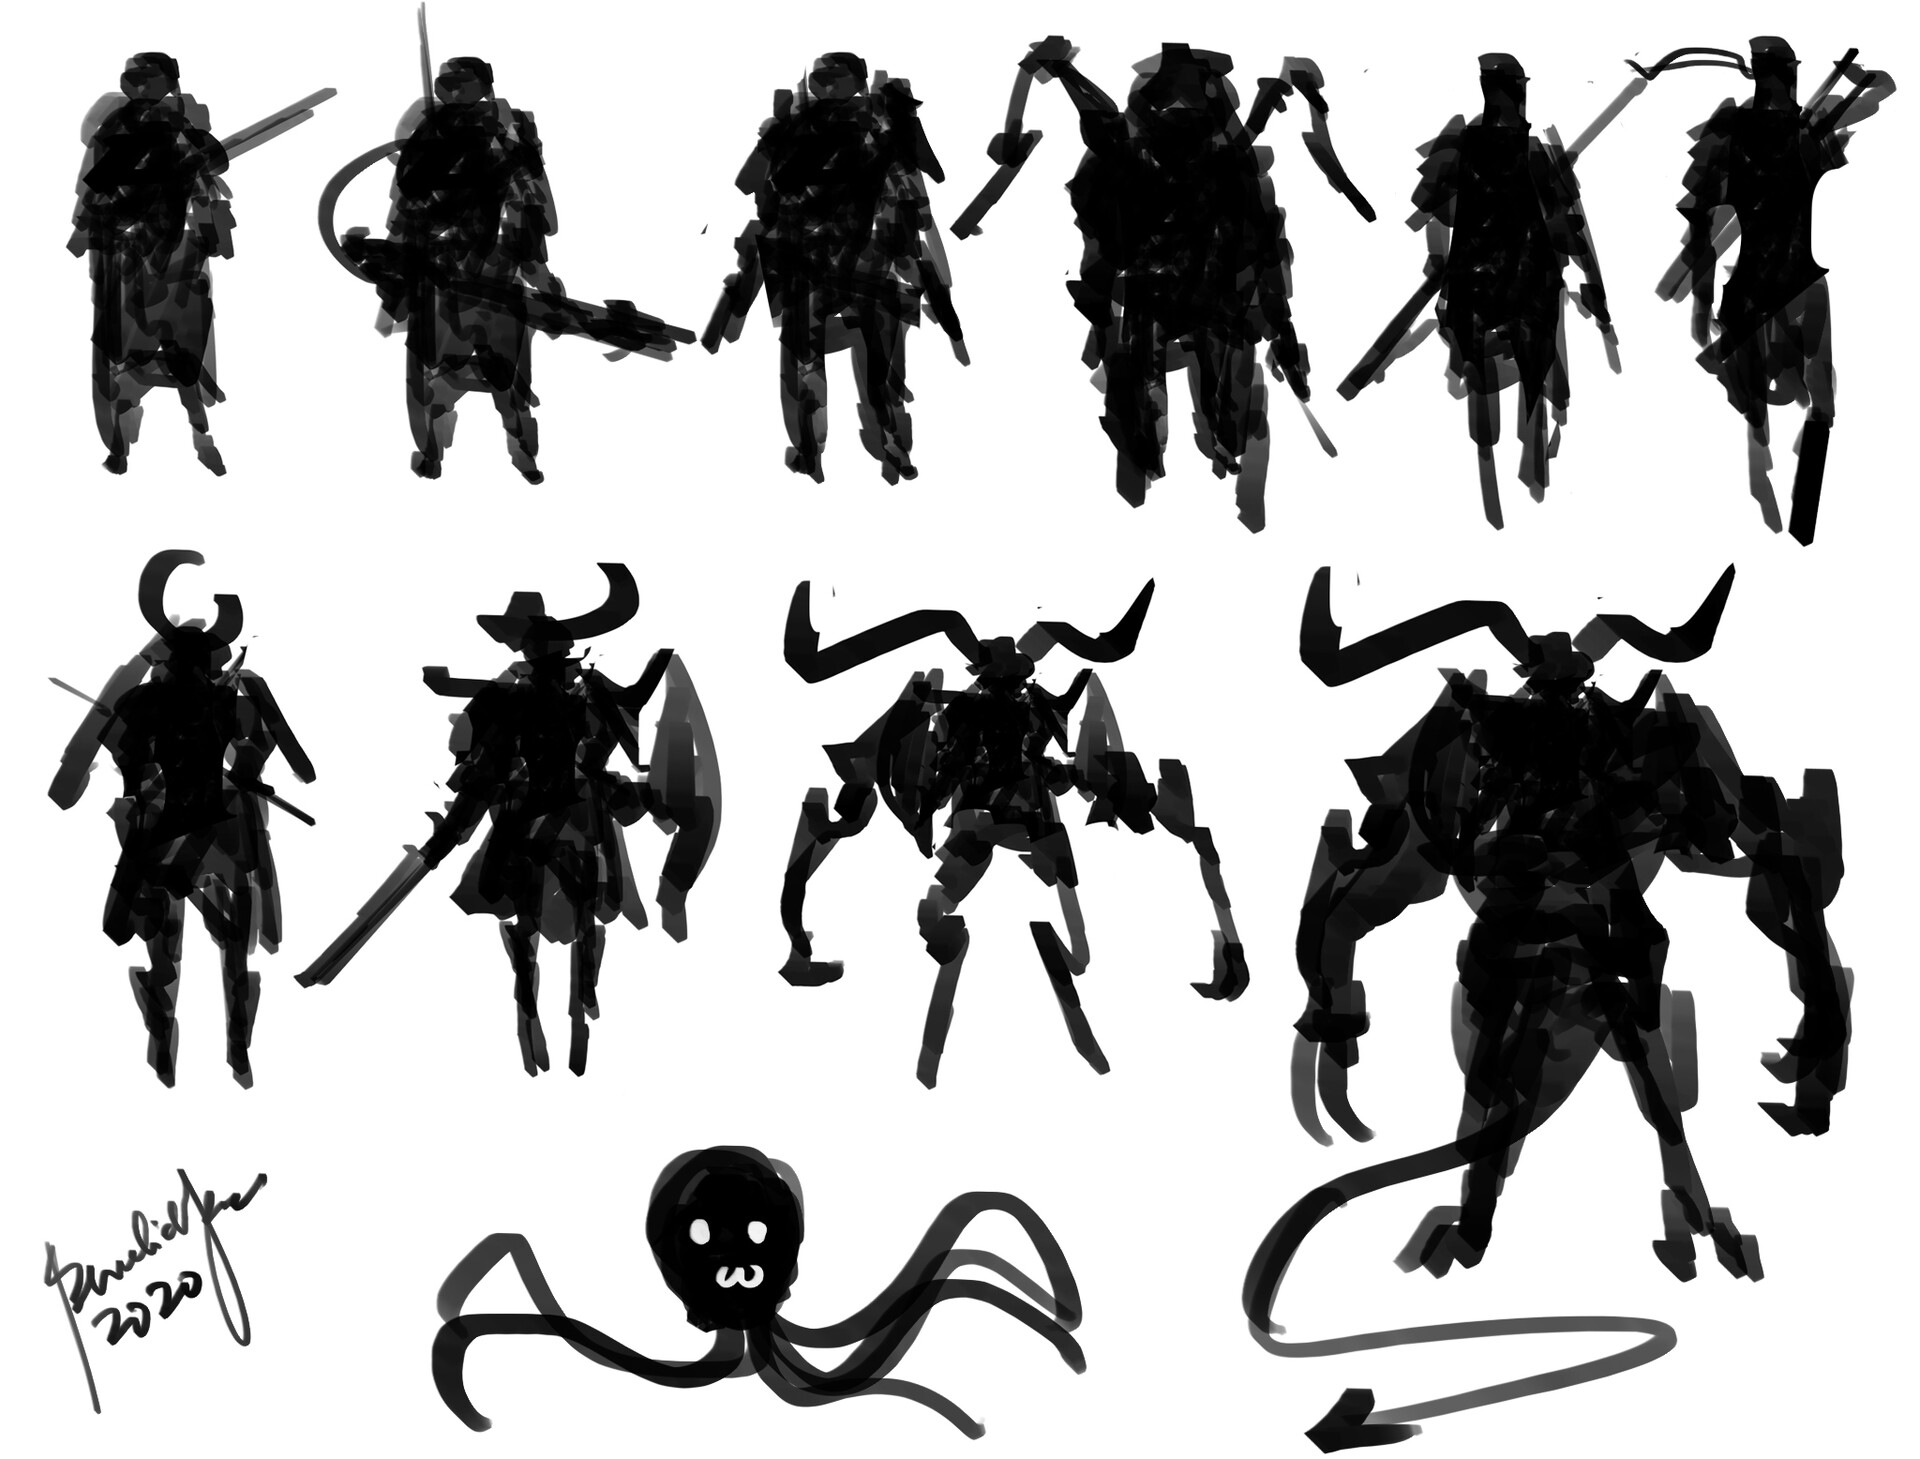 Speedpainting character designs Silhouettes in 8 minutes (Not timelapse video) Using only 1 base character. :D